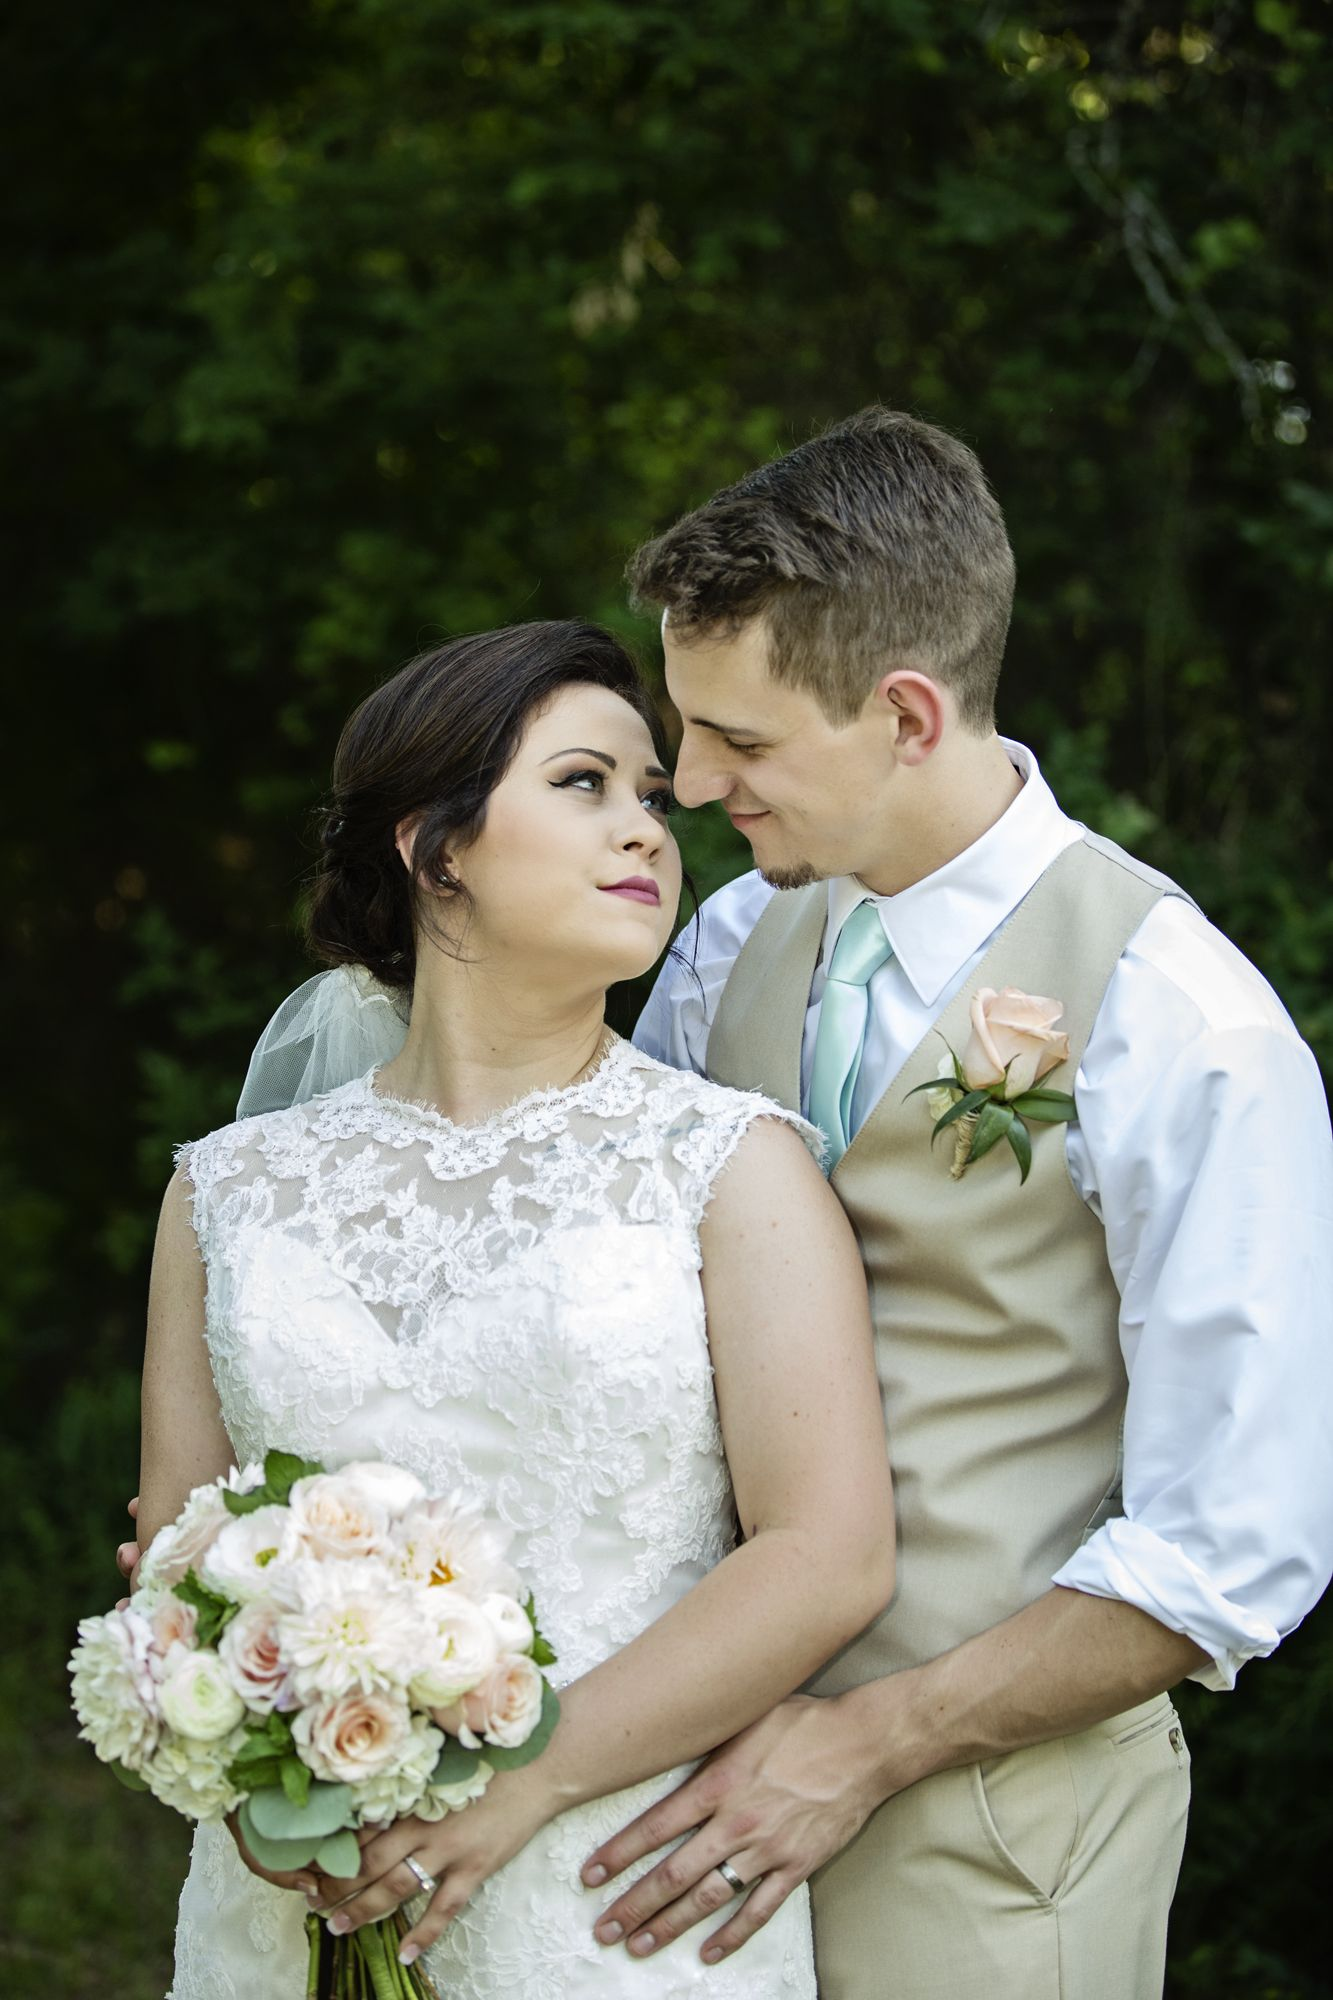 April wedding at The Grove in Aubrey, TX!